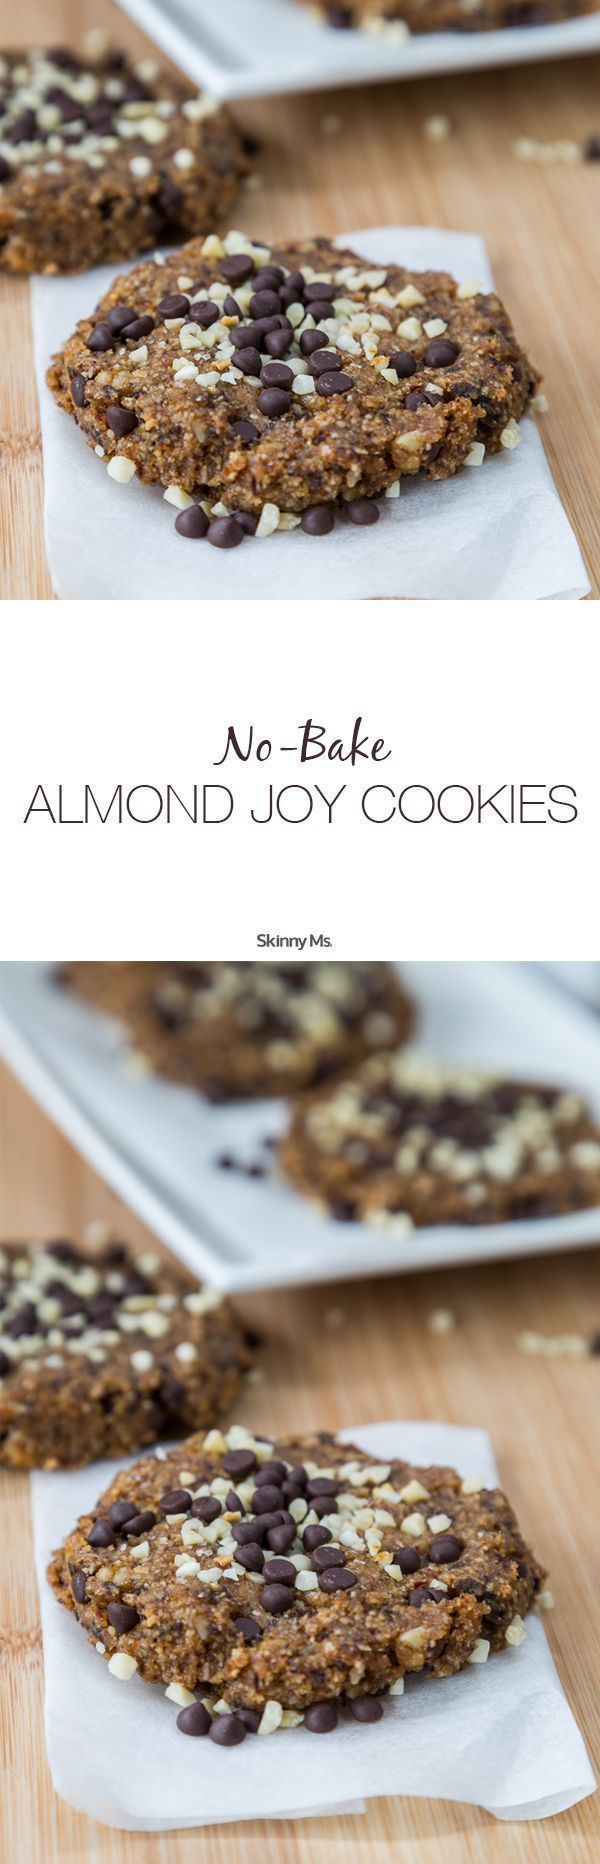 This recipe for No-Bake Almond Joy Cookies is easy breezy!